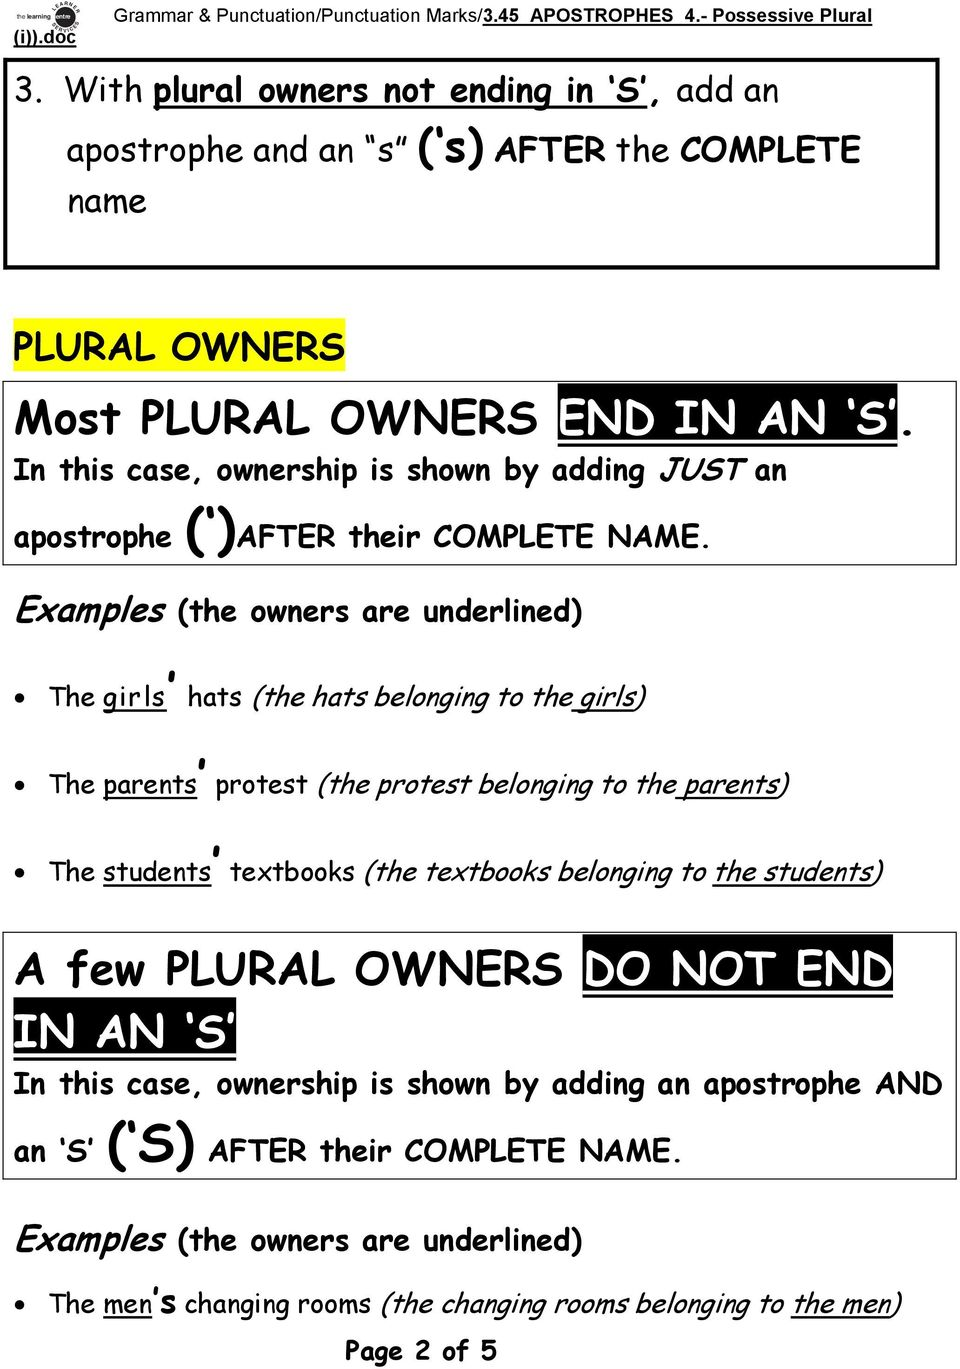 Grammar & Punctuation/Punctuation Marks/3.45 APOSTROPHES 4.- Possessive  Plural. APOSTROPHES 4. Possessive Plural (i) - PDF Free Download